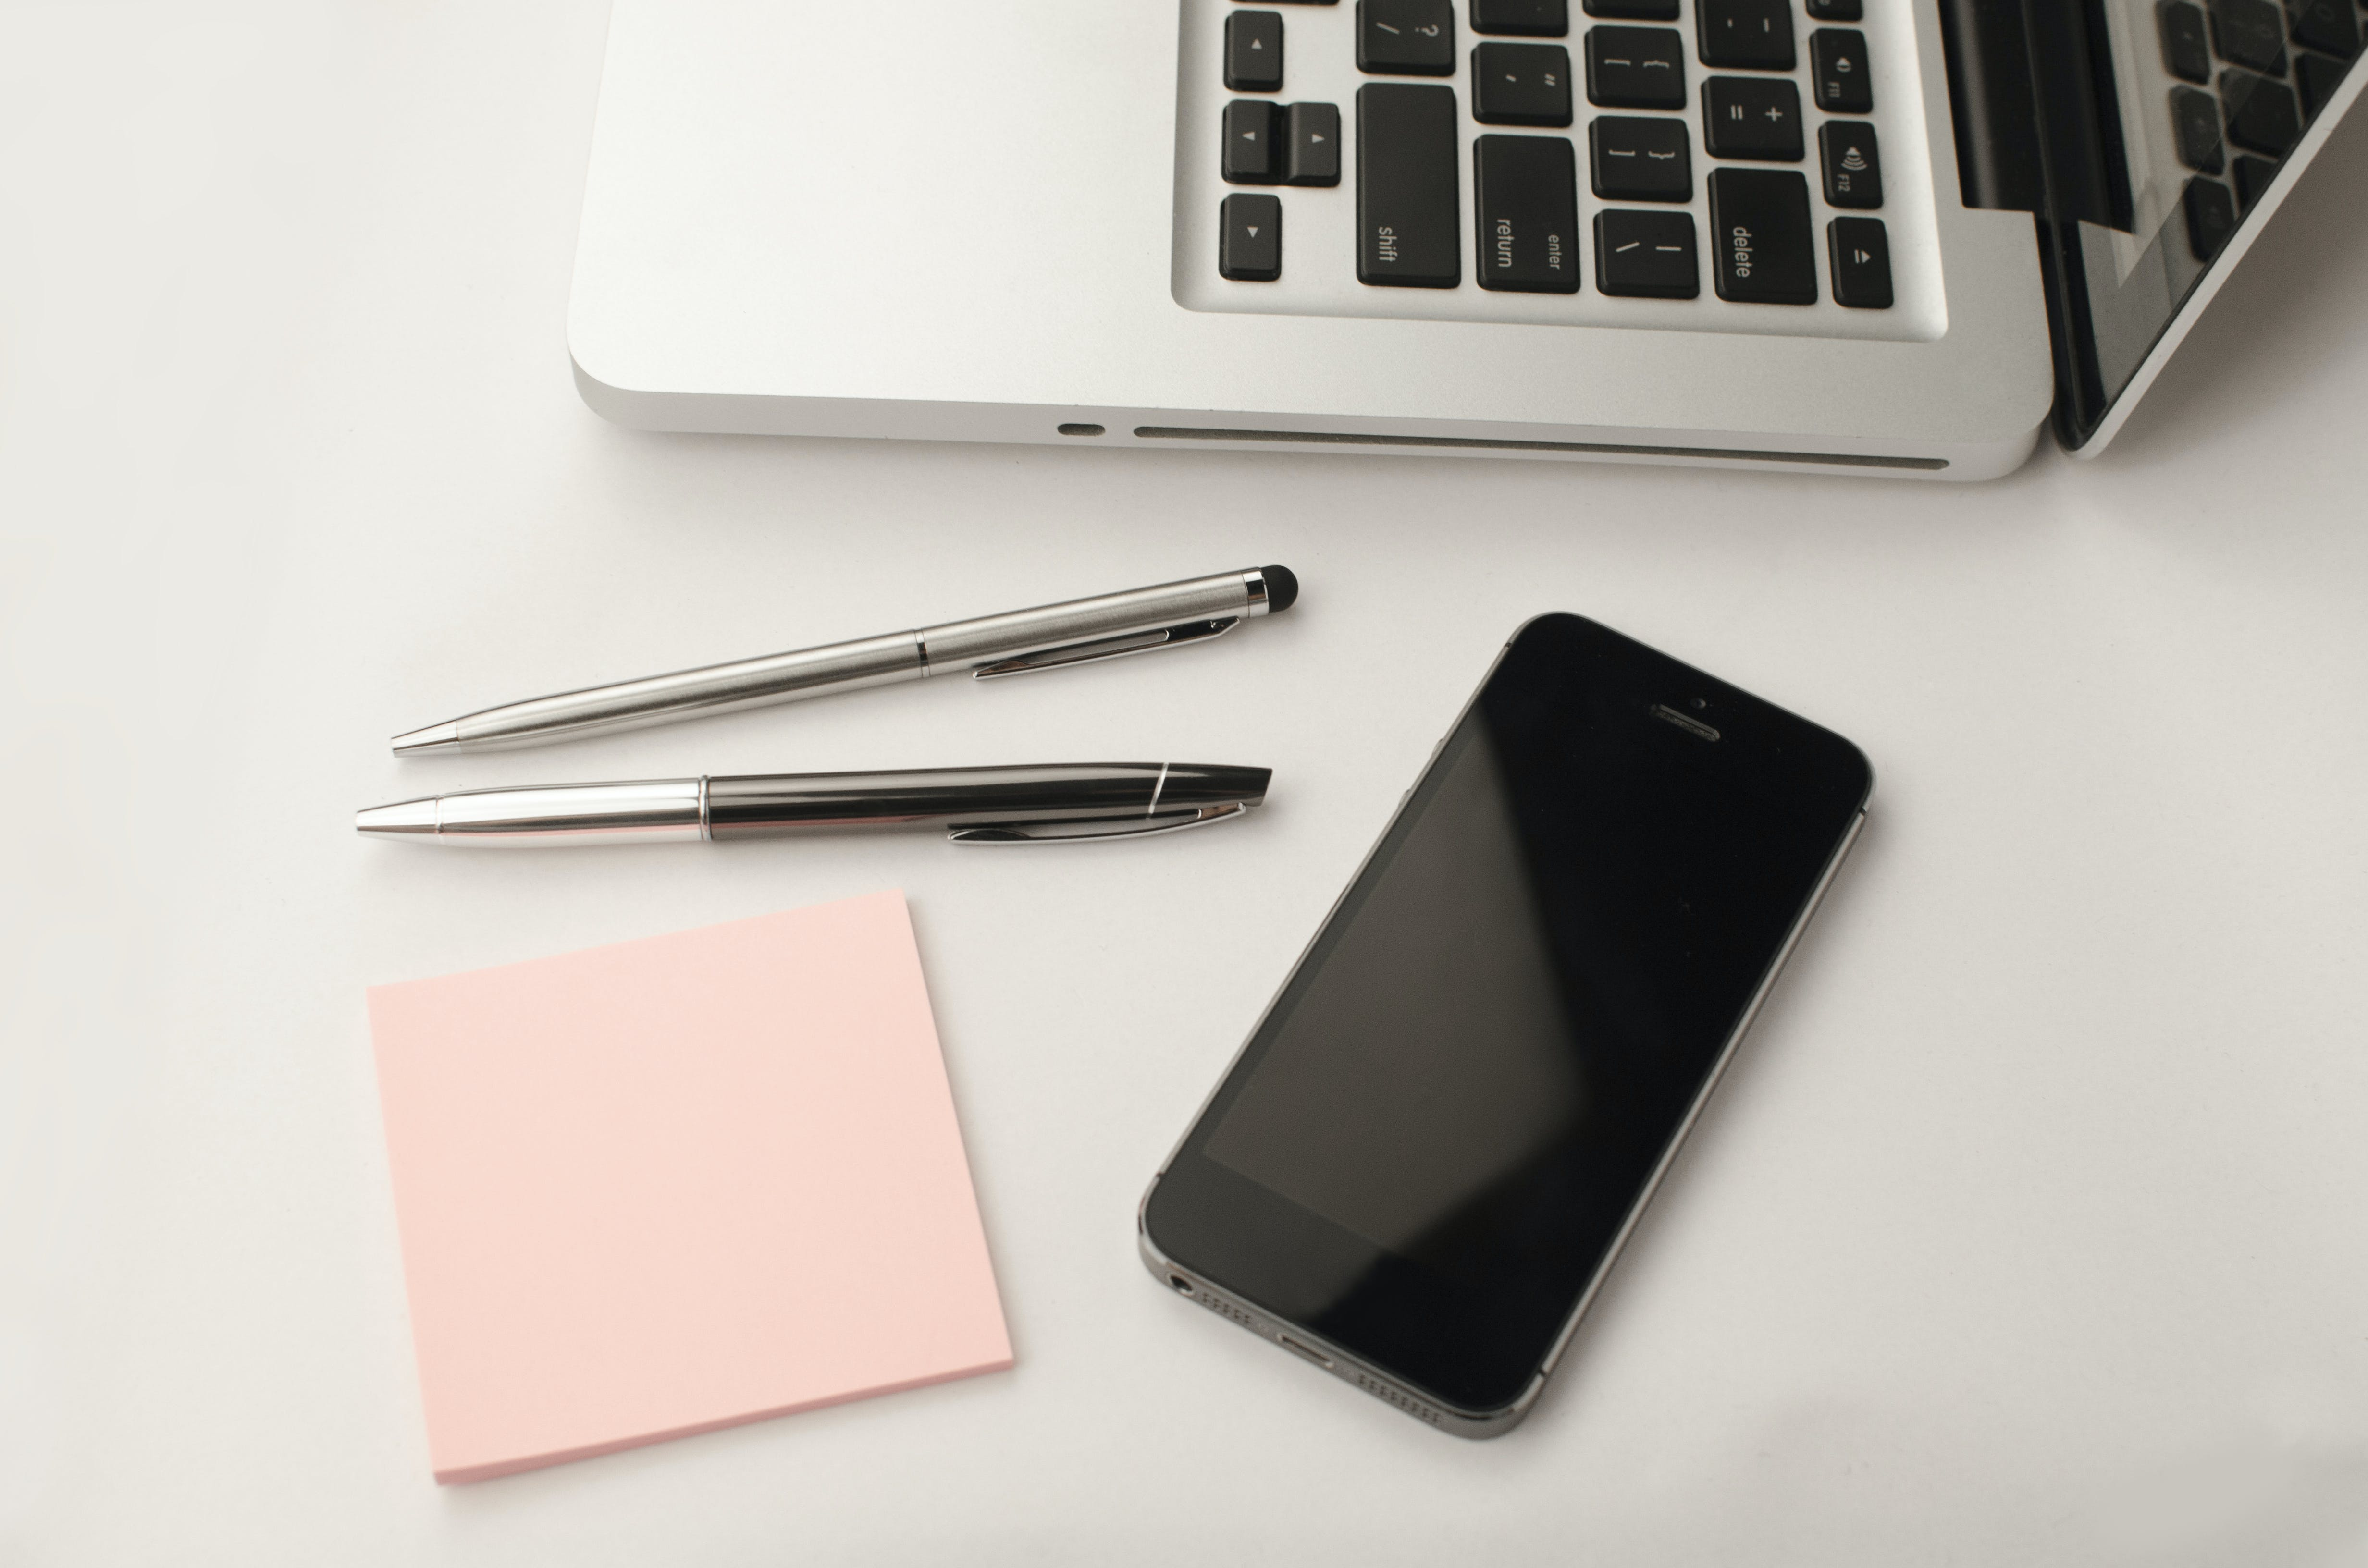 Space Gray Iphone 6 Beside Two Retractable Pens and Macbook